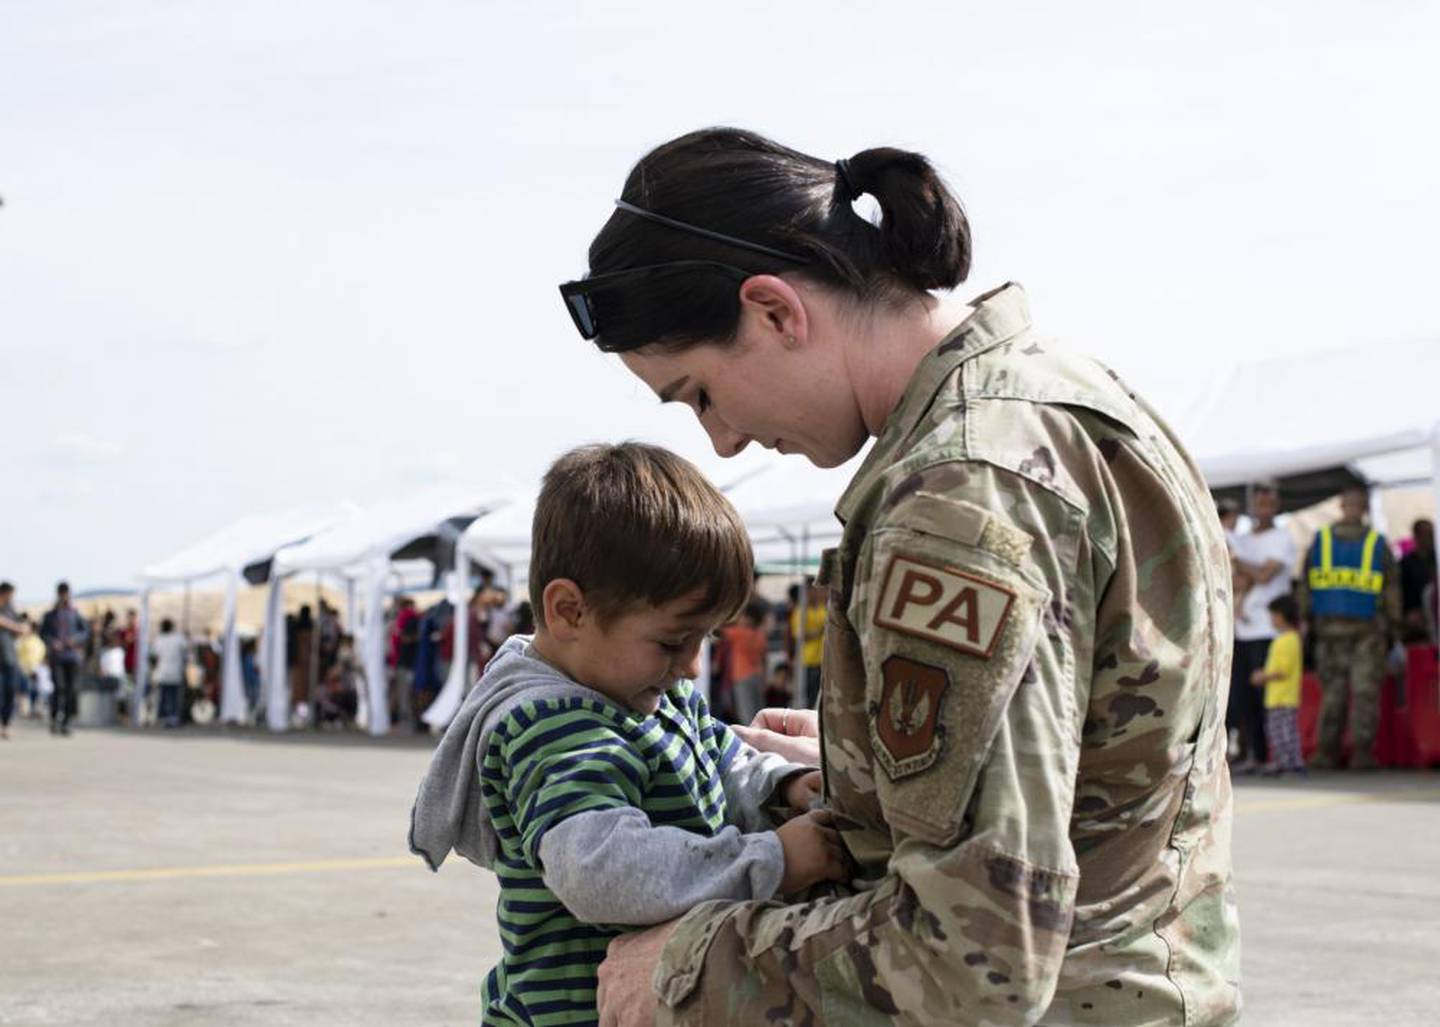 U.S. Air Force Capt. Shelby Chapman, 86th Airlift Wing Public Affairs Mission Partner Support chief, comforts a child at Ramstein Air Base, Germany, Sept. 7, 2021. Chapman leads the community engagement team for Operation Allies Refuge. (Staff Sgt. Jourdan Barrons/Air Force)